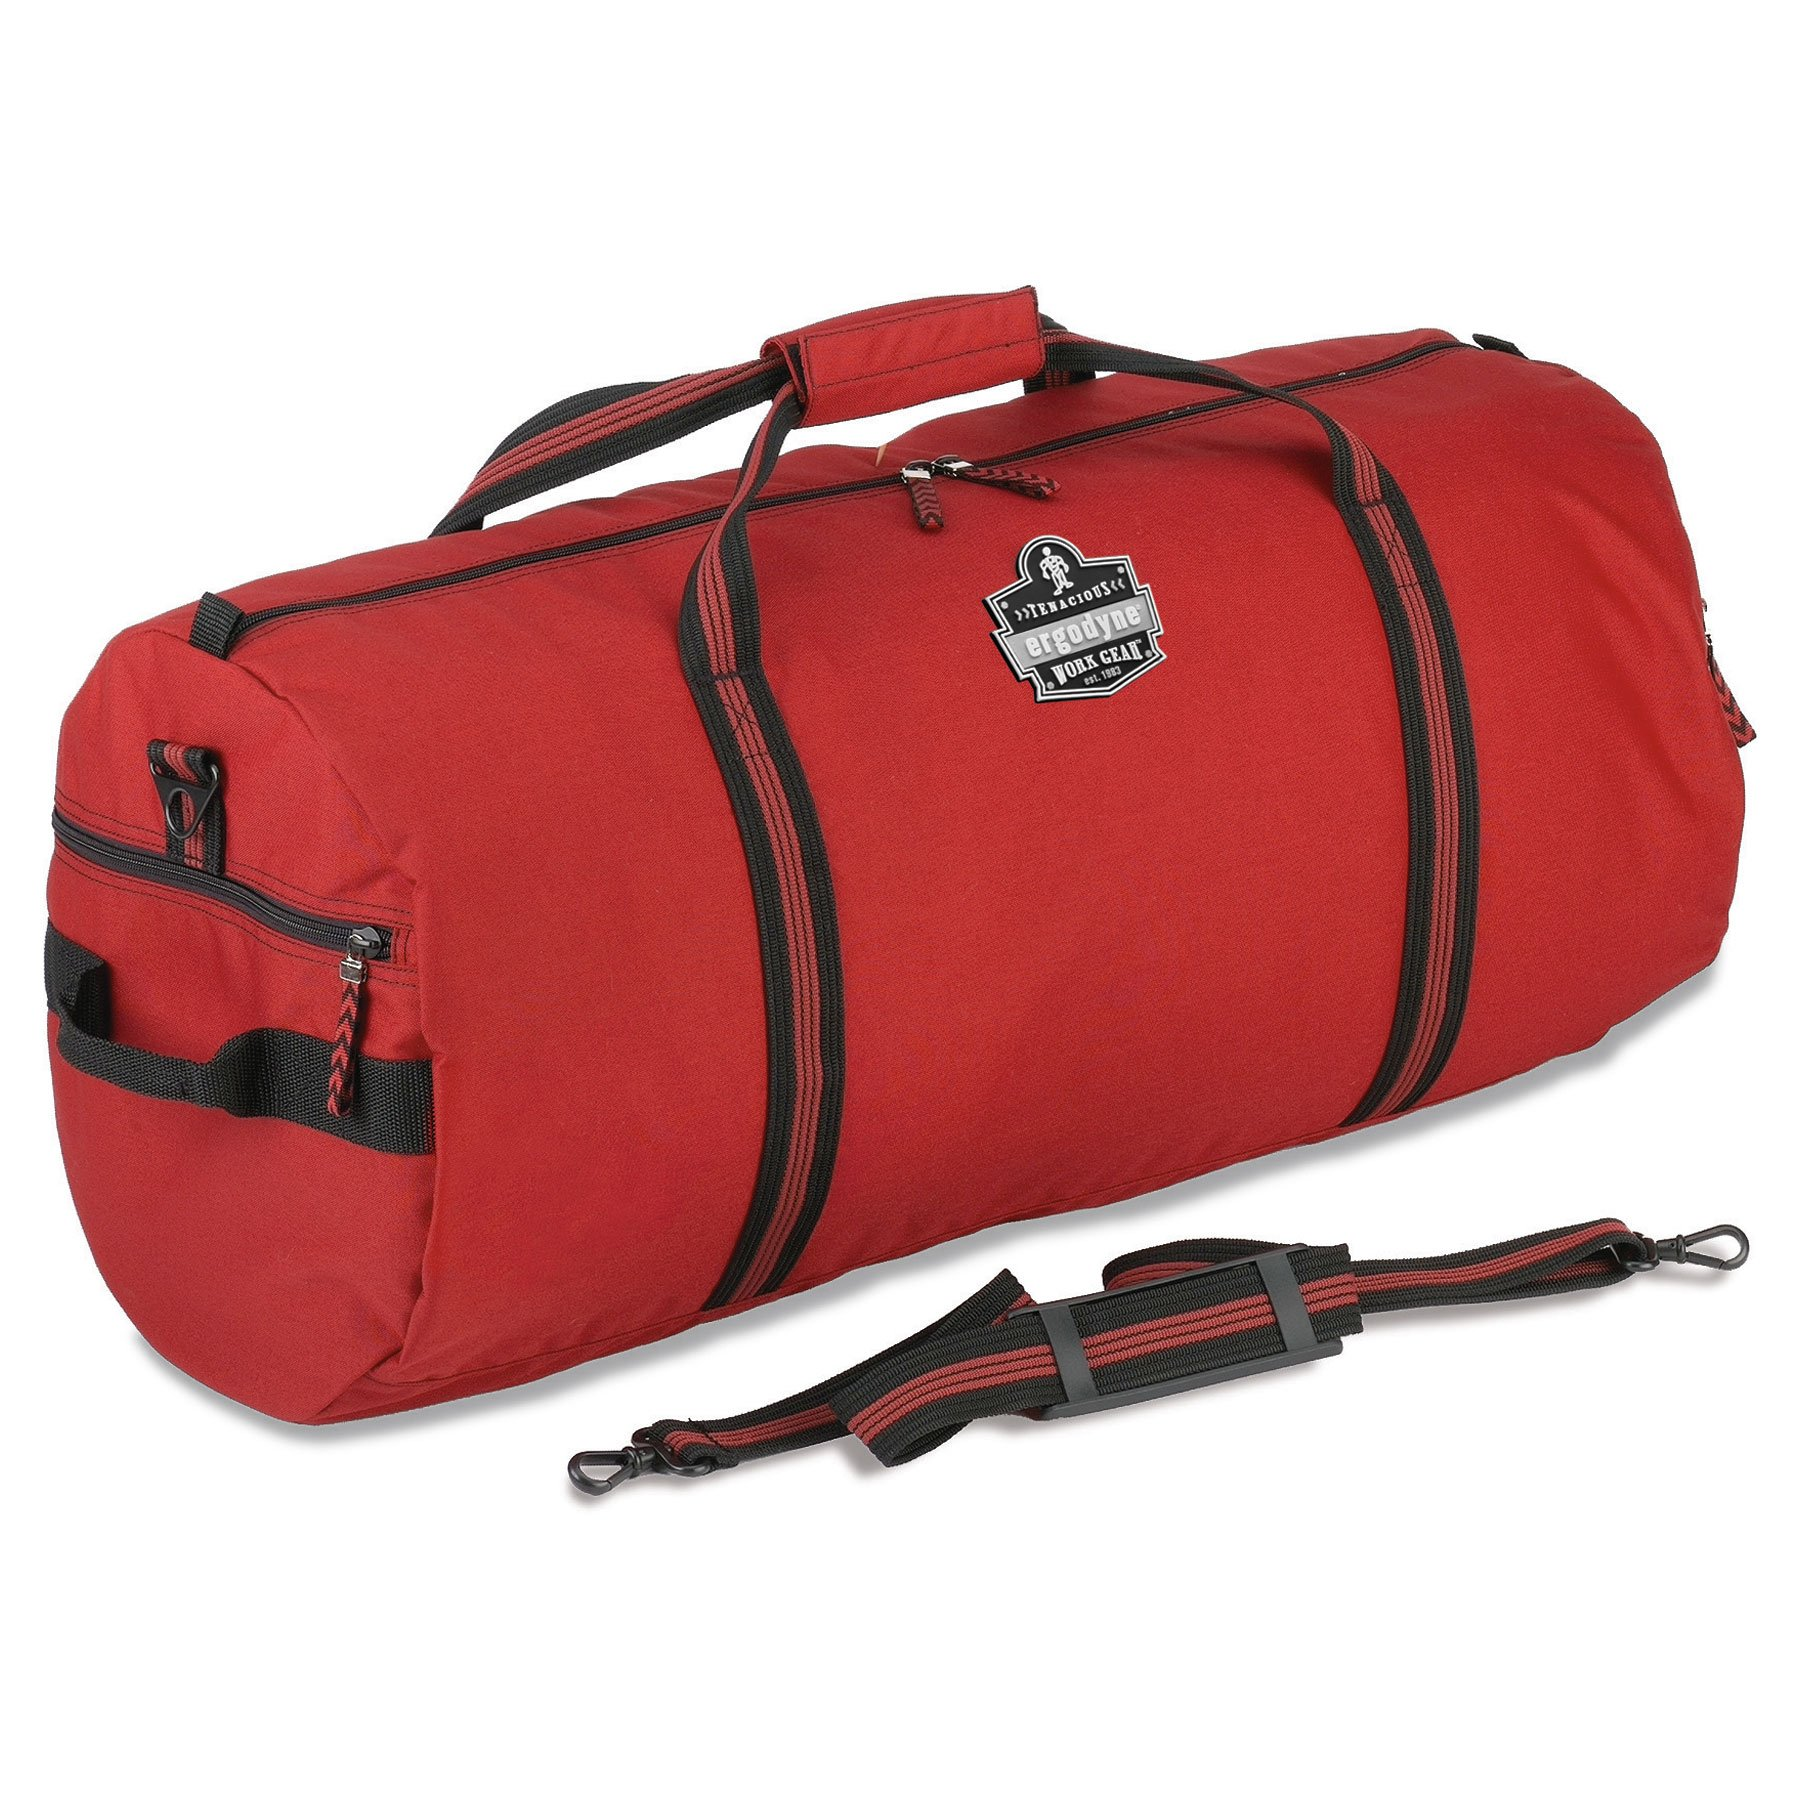 Ergodyne - GB5020 M Red Duffel Bag - Medium